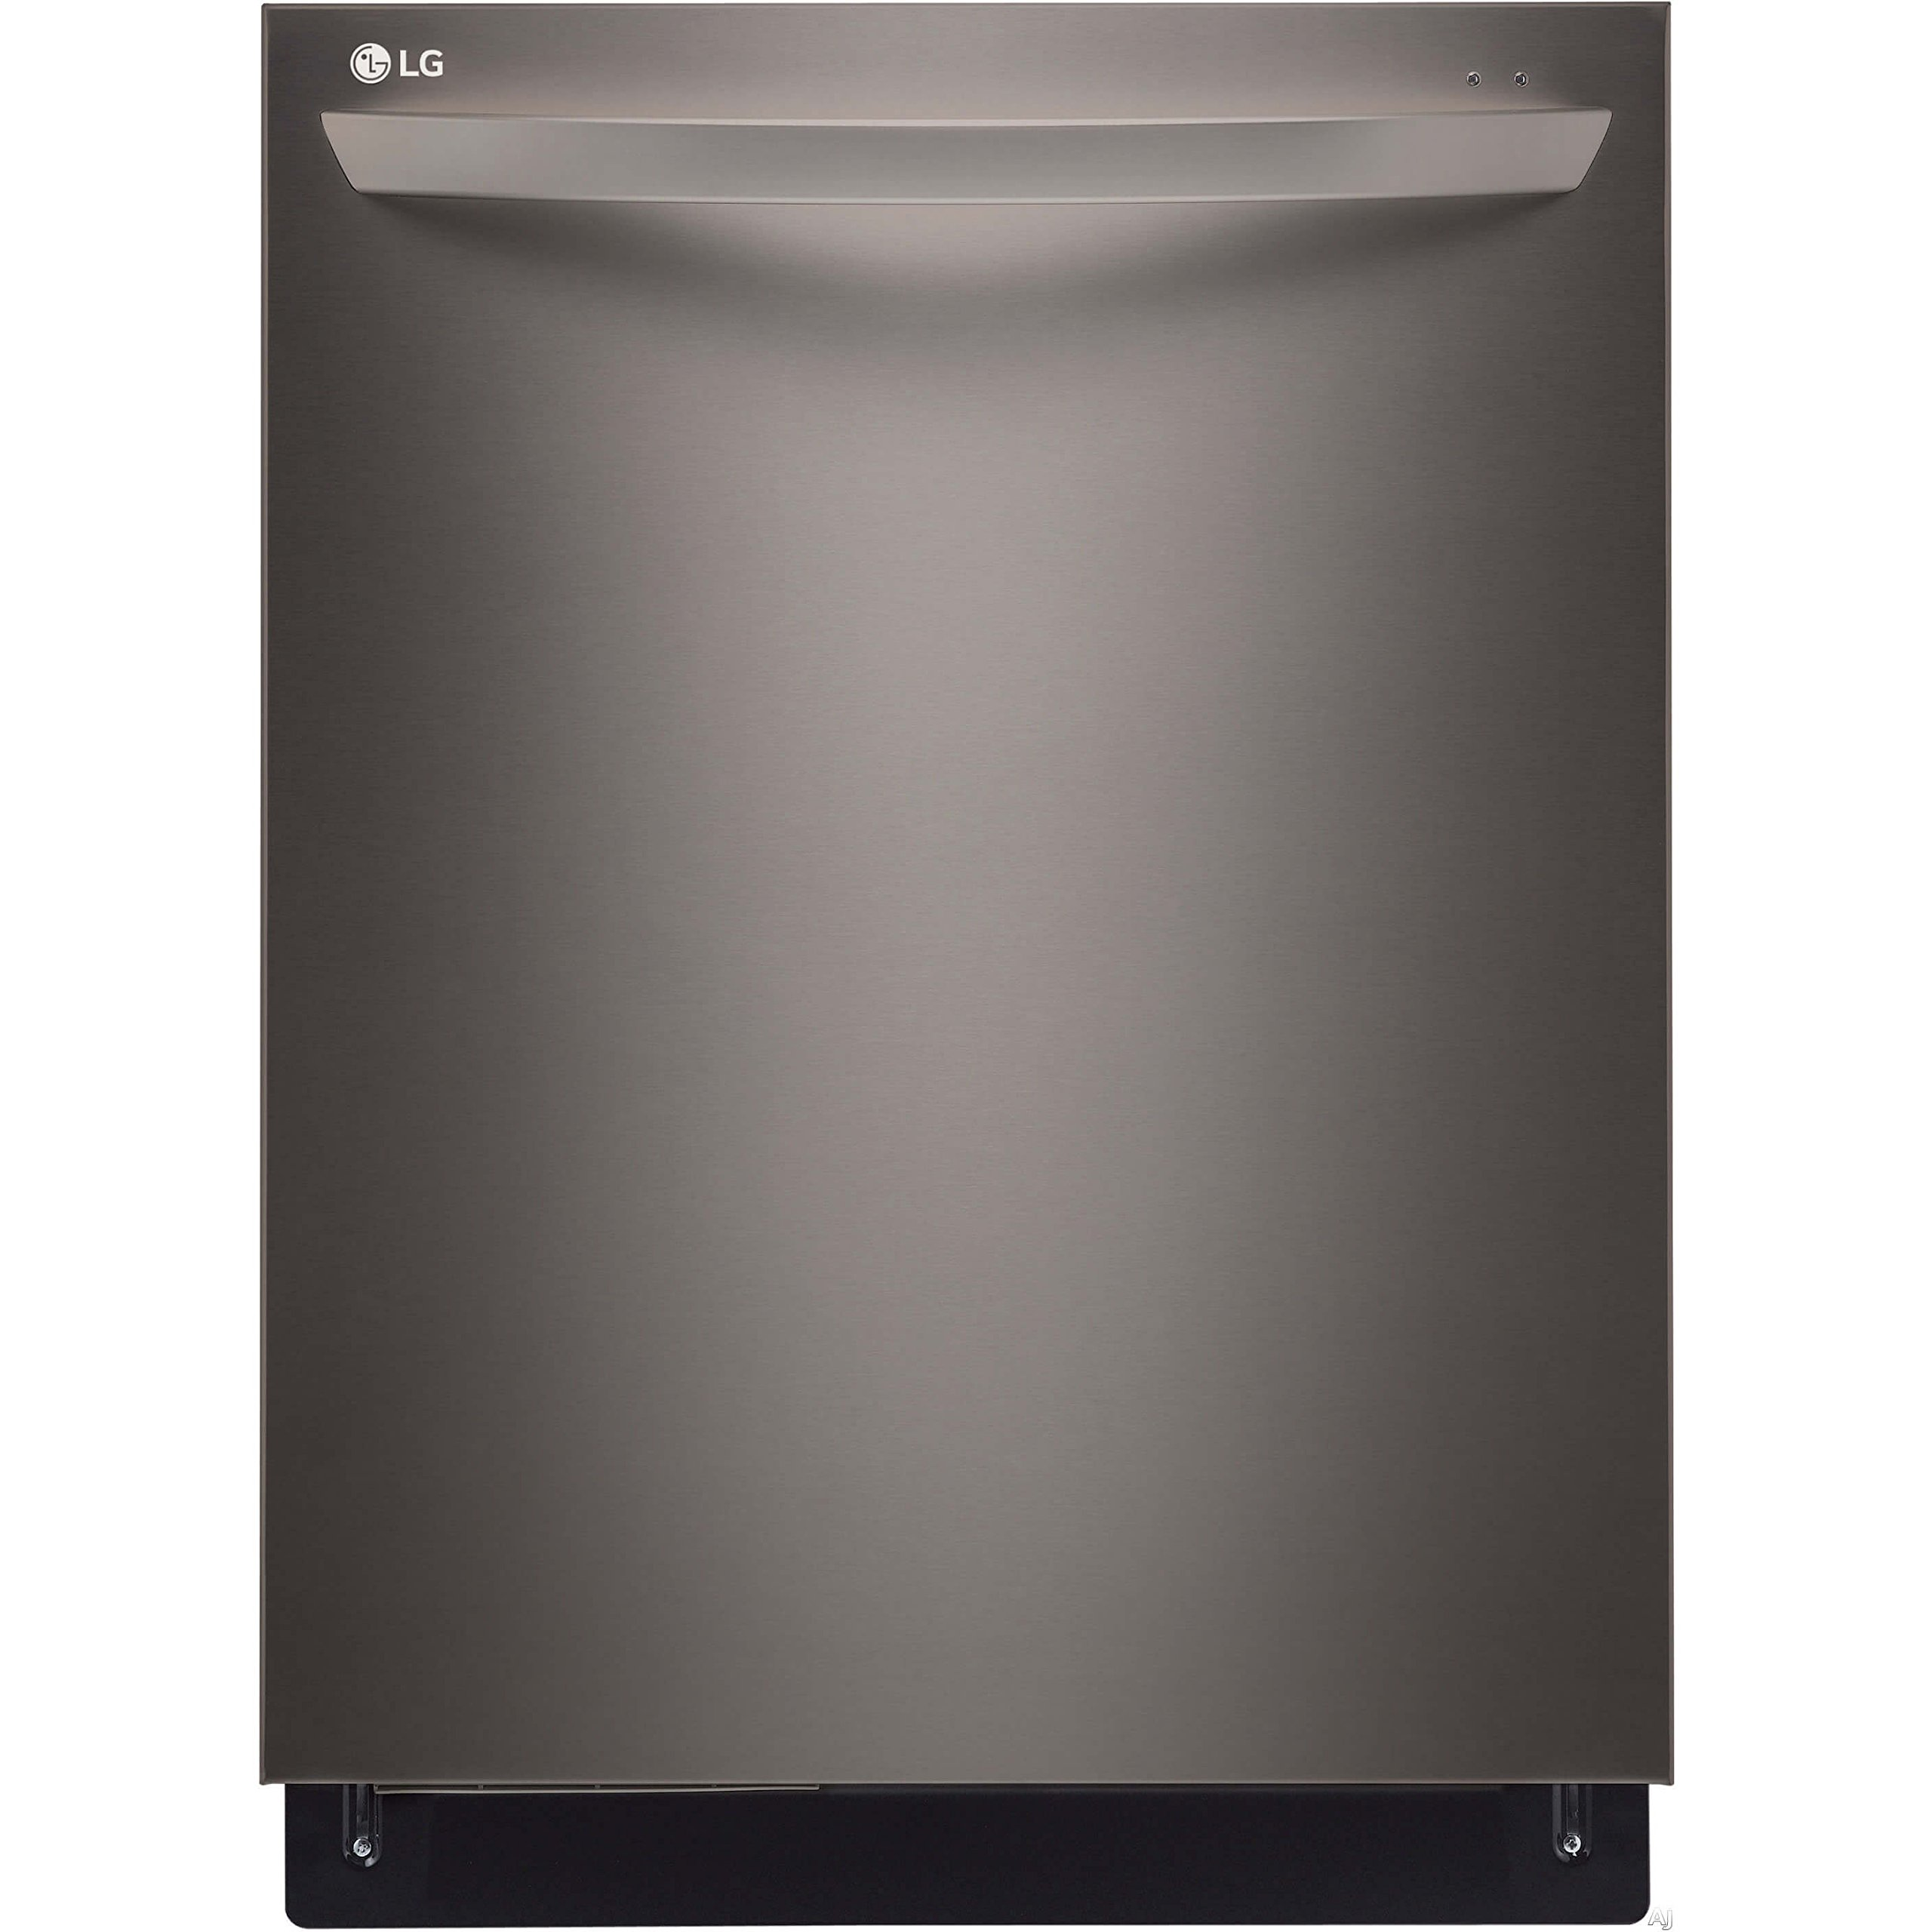 LG LDF7774BD 24'' Fully-Integrated Dishwasher with 15 Place Settings in Black Stainless Steel